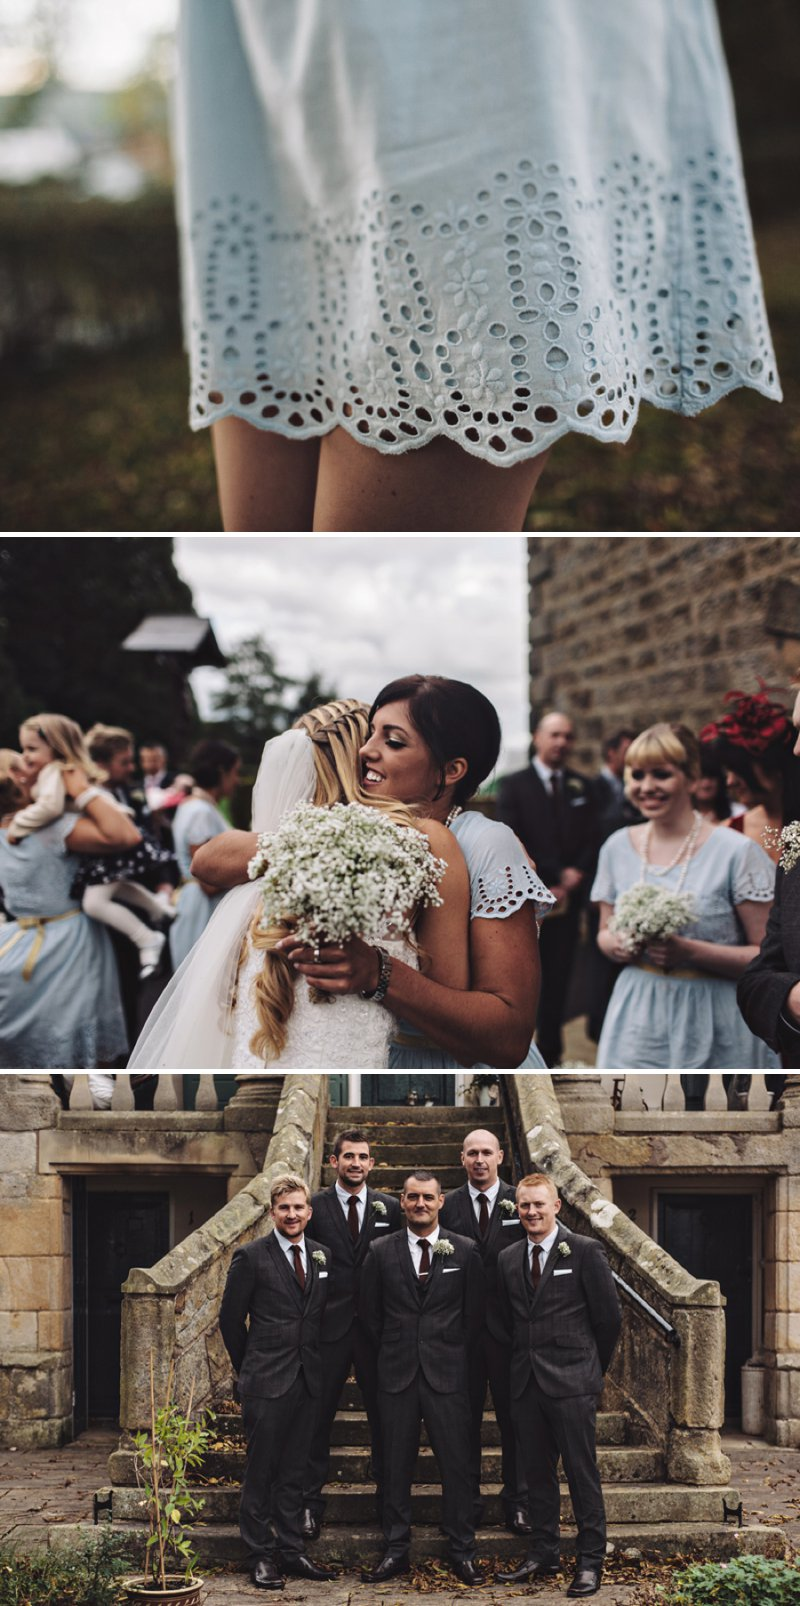 A Rustic Village Hall Wedding With A Blue And Gold Colour Scheme And Stag Graphic Across The Stationery With Bride In Bespoke Dress By Chic Dress And Groom In Brown Suit With Bridesmaids In Baby Blue Dresses With Broderie Anglaise Detail 5